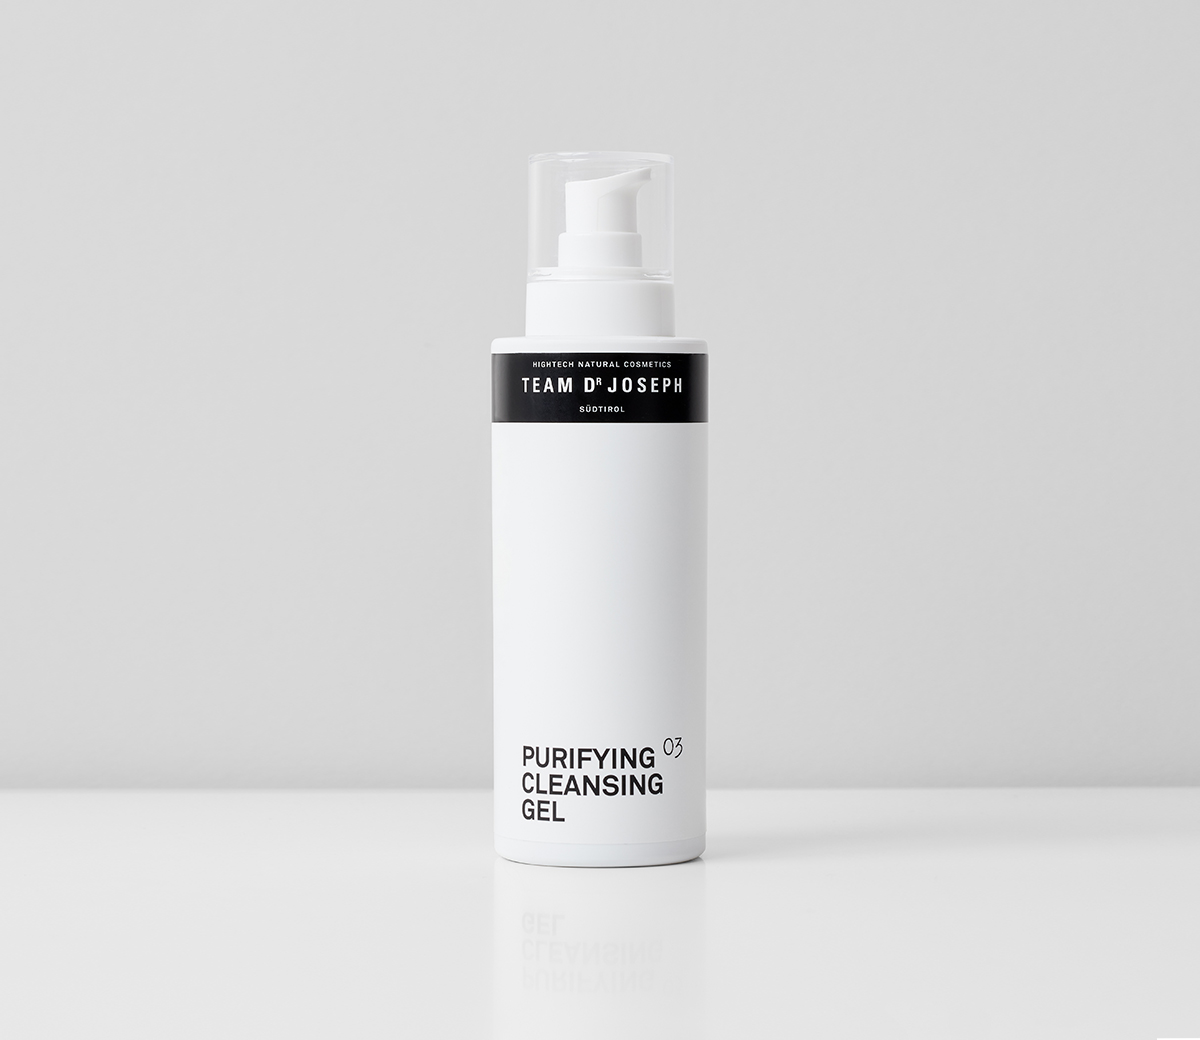 Purifying Cleansing Gel, 200 ml Clarifying and refreshing facial cleansing gel